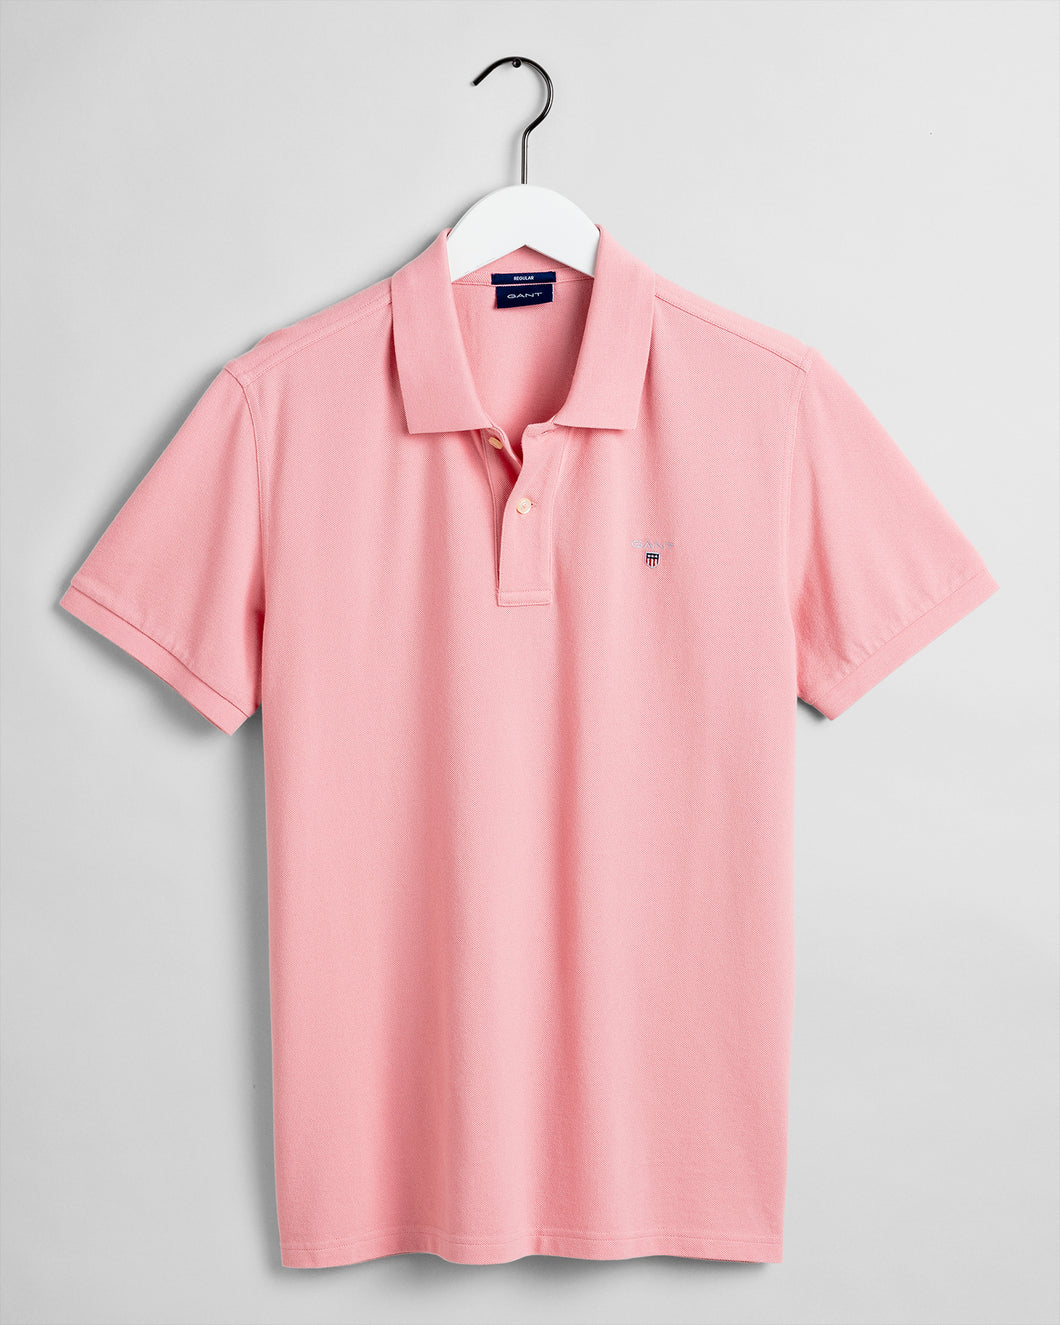 Gant Original Pique Short Sleeve Rugger Summer Rose